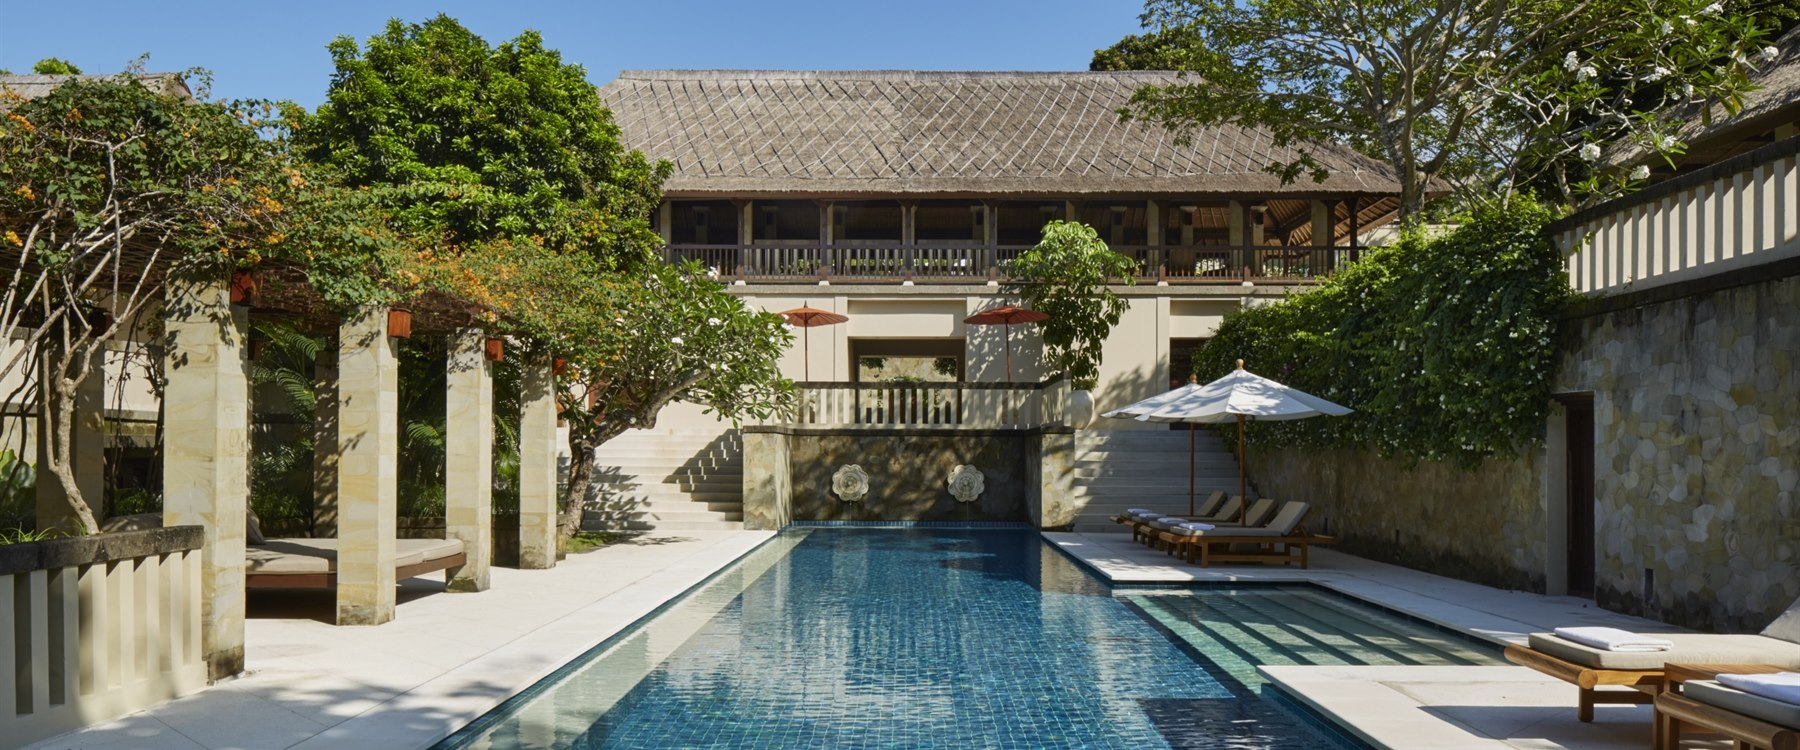 Villa Pool at Amanusa, Bali